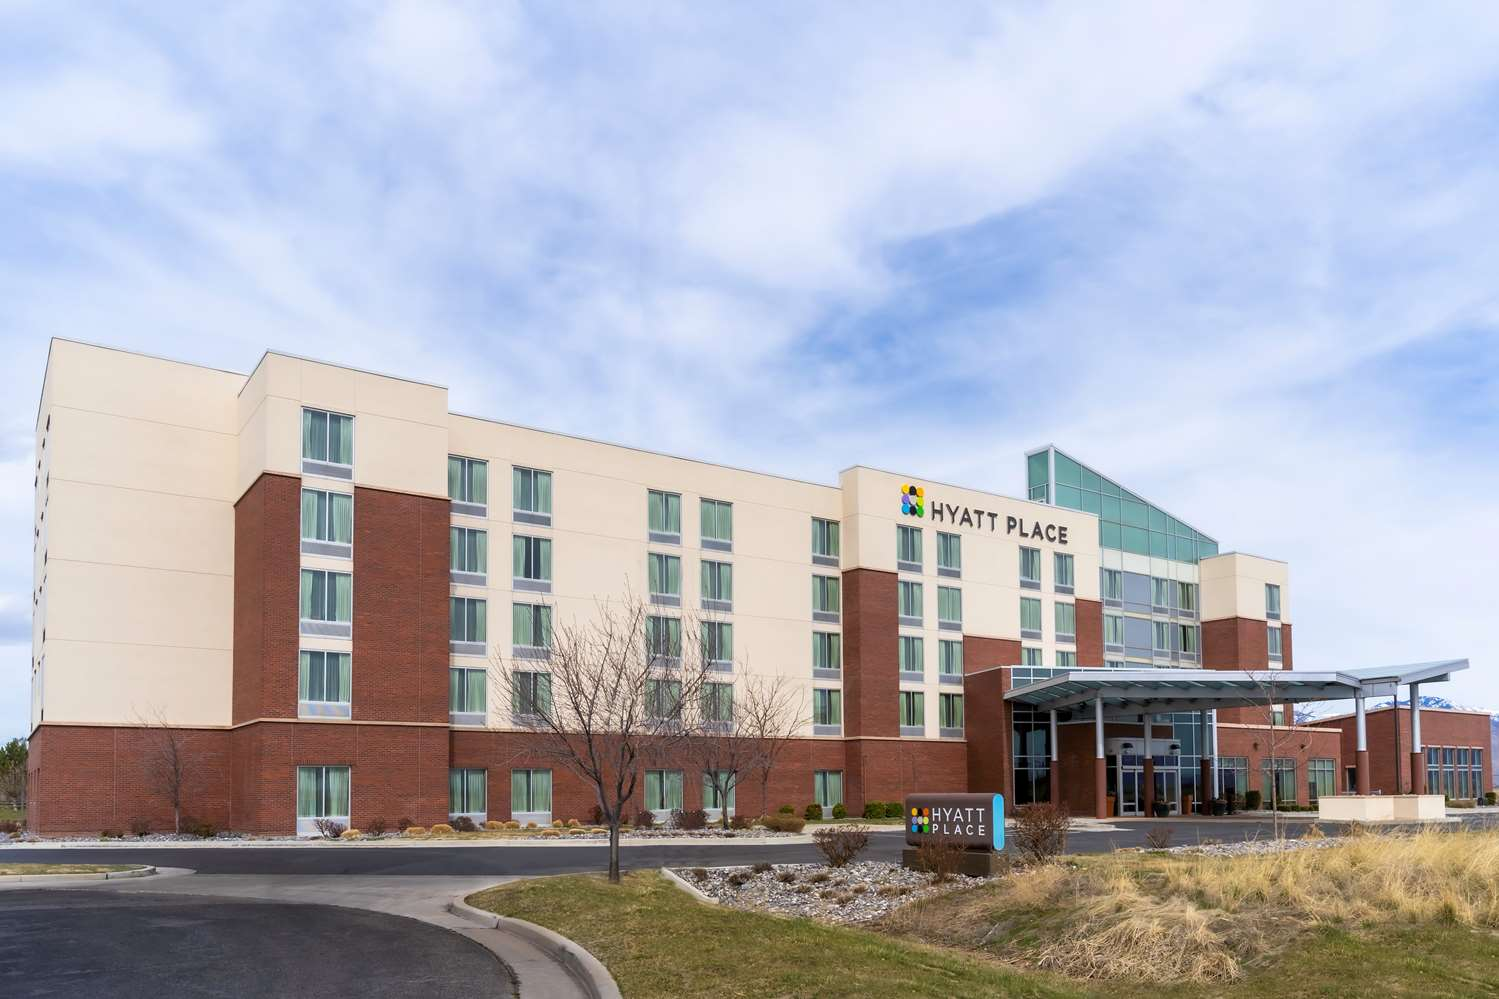 Hyatt Place Hotel Airport Salt Lake City